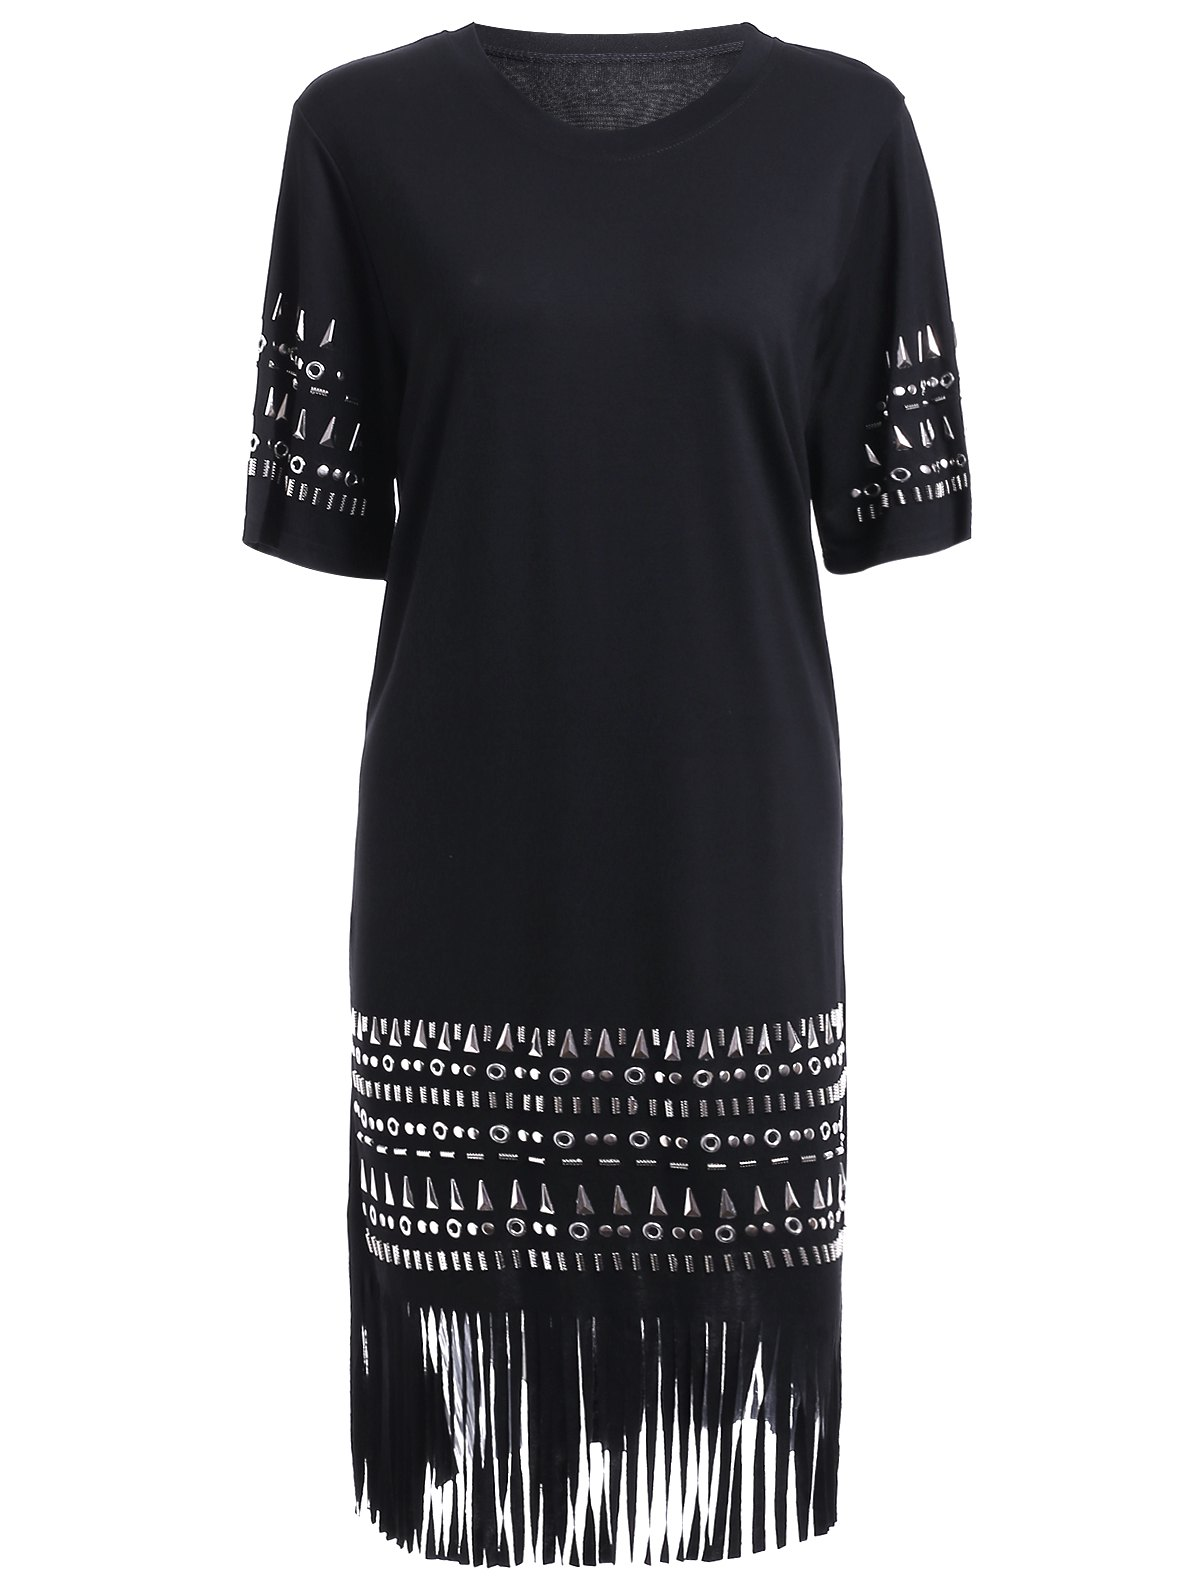 Chic Stud Embellished Fringed Women's Dress - BLACK ONE SIZE(FIT SIZE XS TO M)